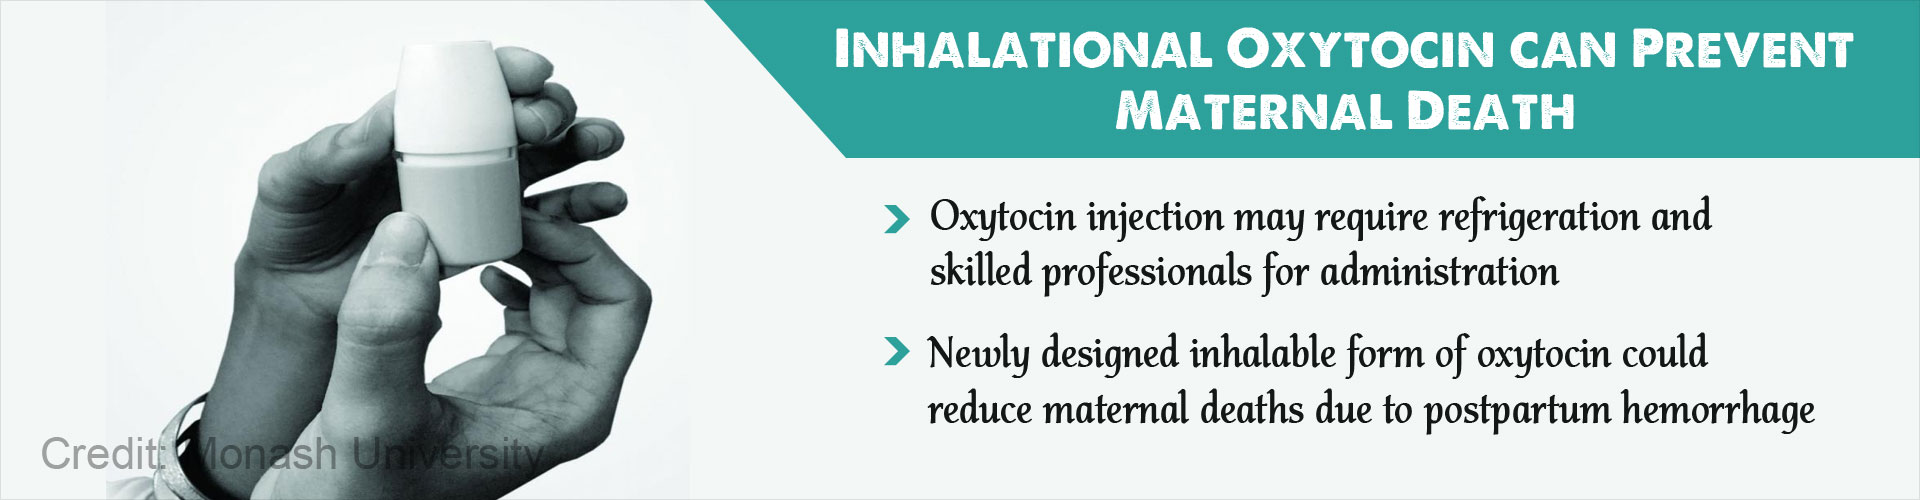 Inhalational oxytocin can prevent maternal death